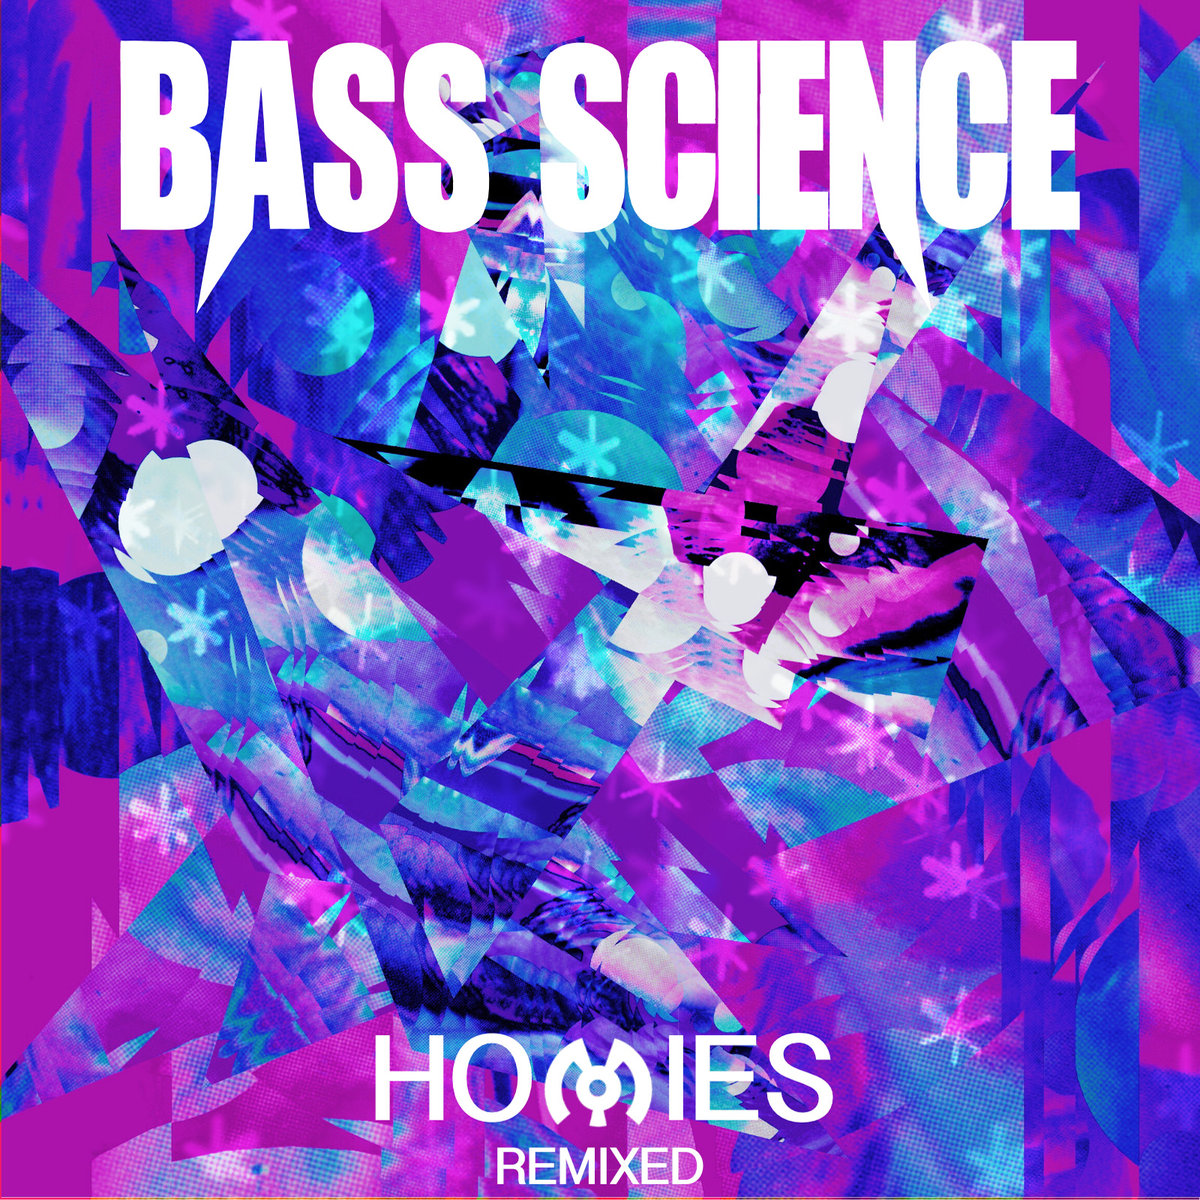 Bass Science - Homies (Remixed) @ 'Homies (Remixed)' album (electronic, dubstep)